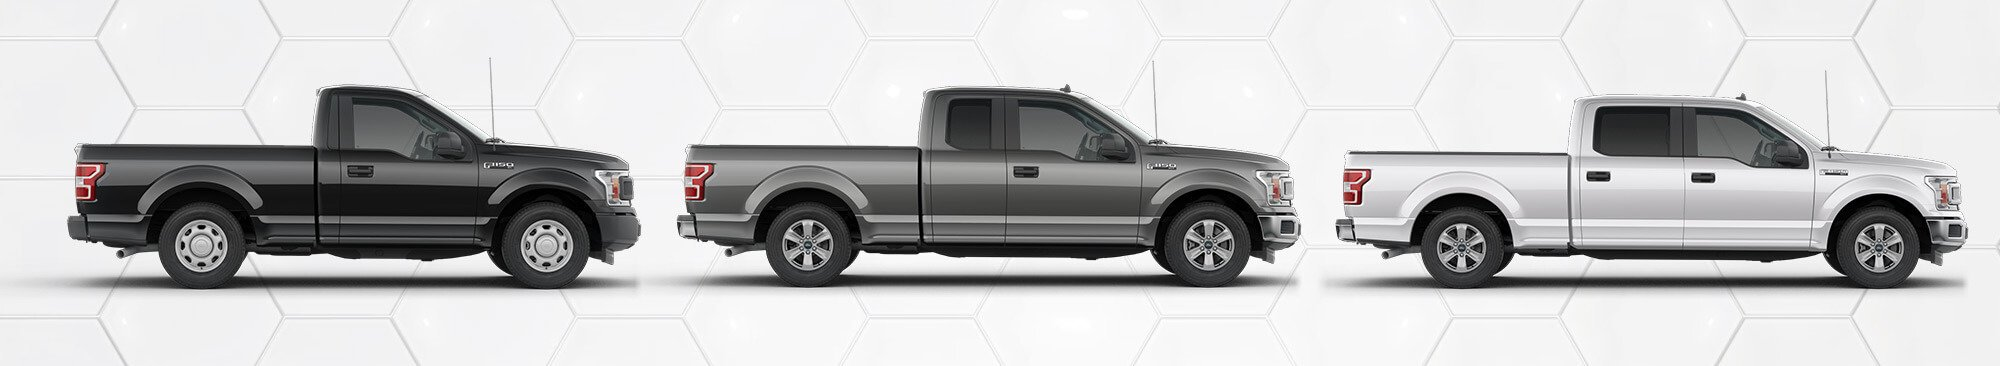 Marshal Mize Ford What Are The Different Ford F 150 Bed Lengths Marshal Mize Ford Blog